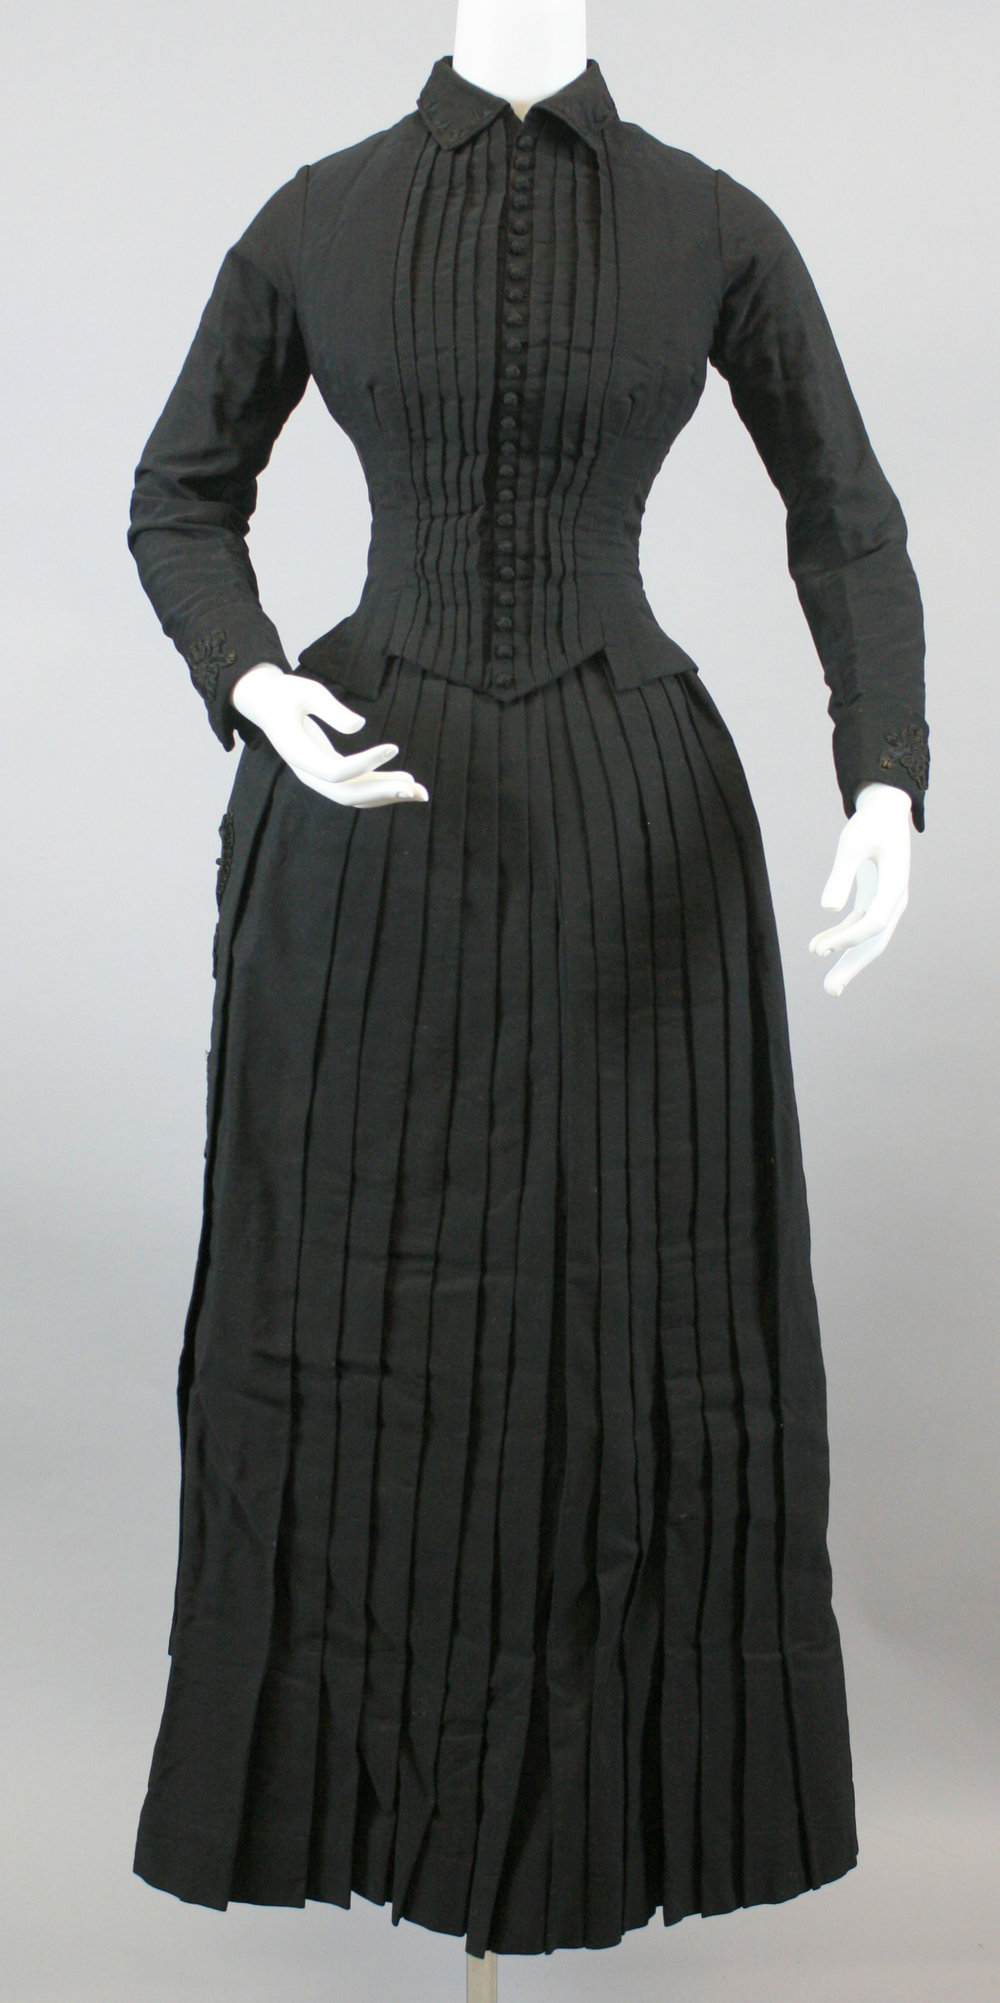 Clothing that tells stories. This dress was worn by Louisa Heileman Mueller, daughter of Gottlieb and Johanna Heileman.